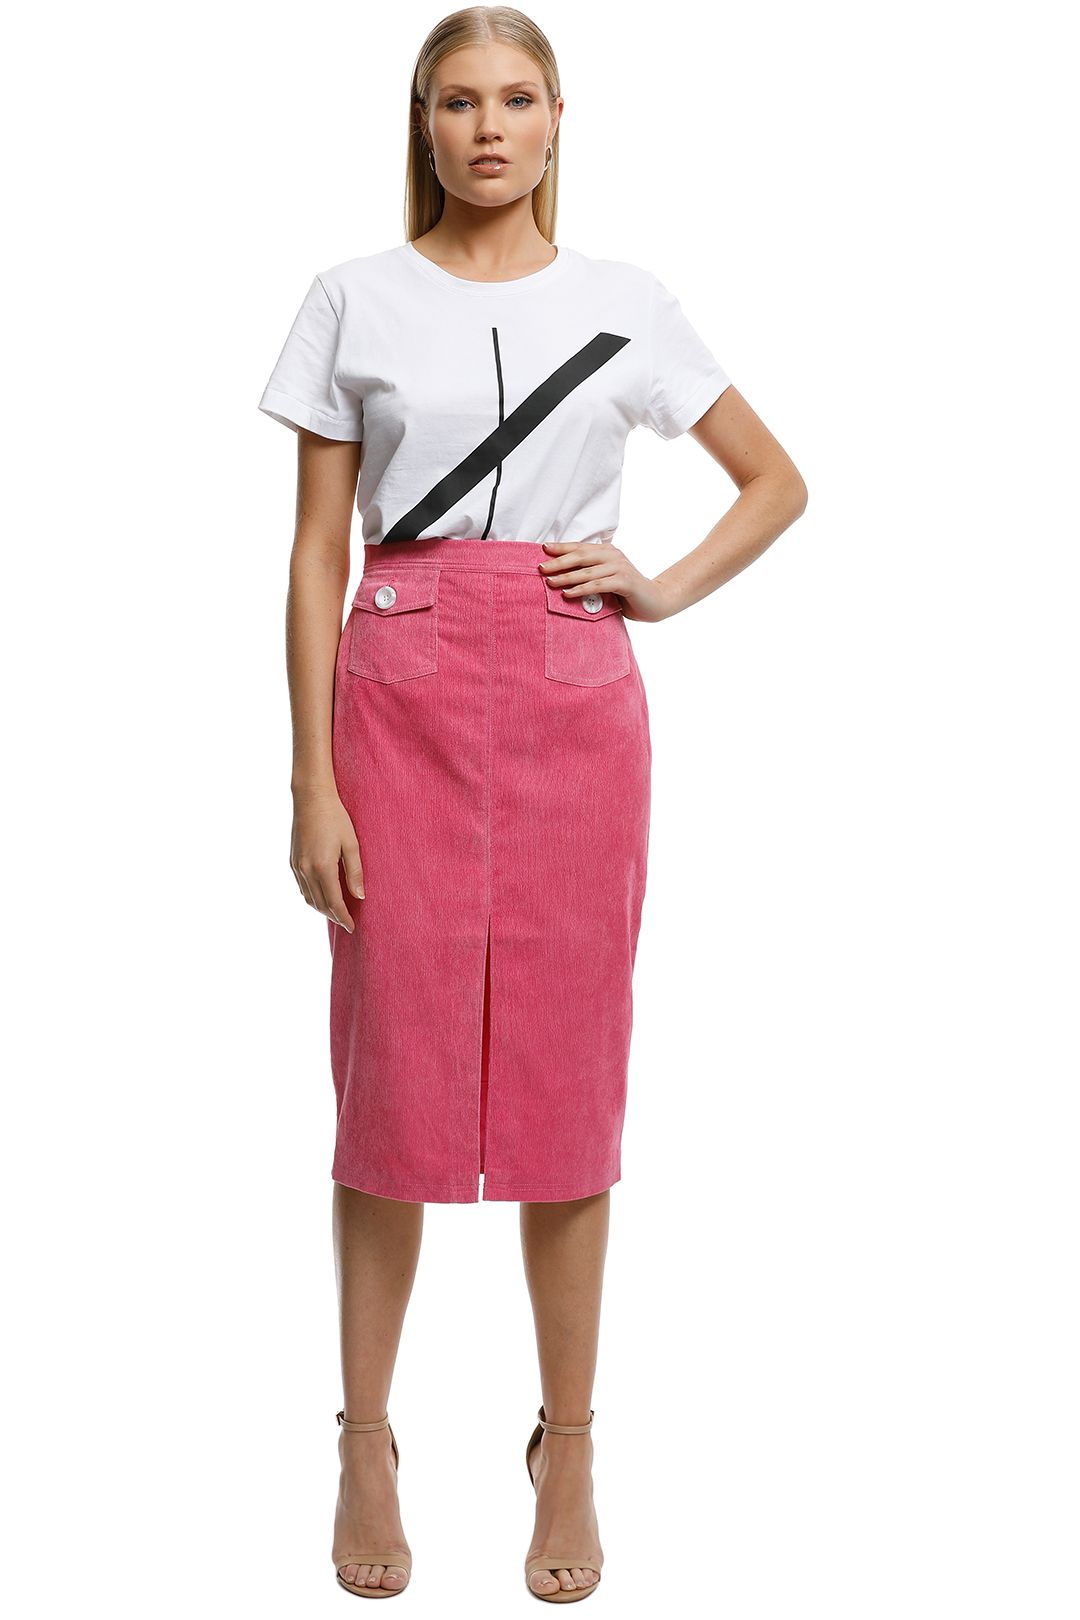 The East Order - Tarvi Skirt - Pink - Front